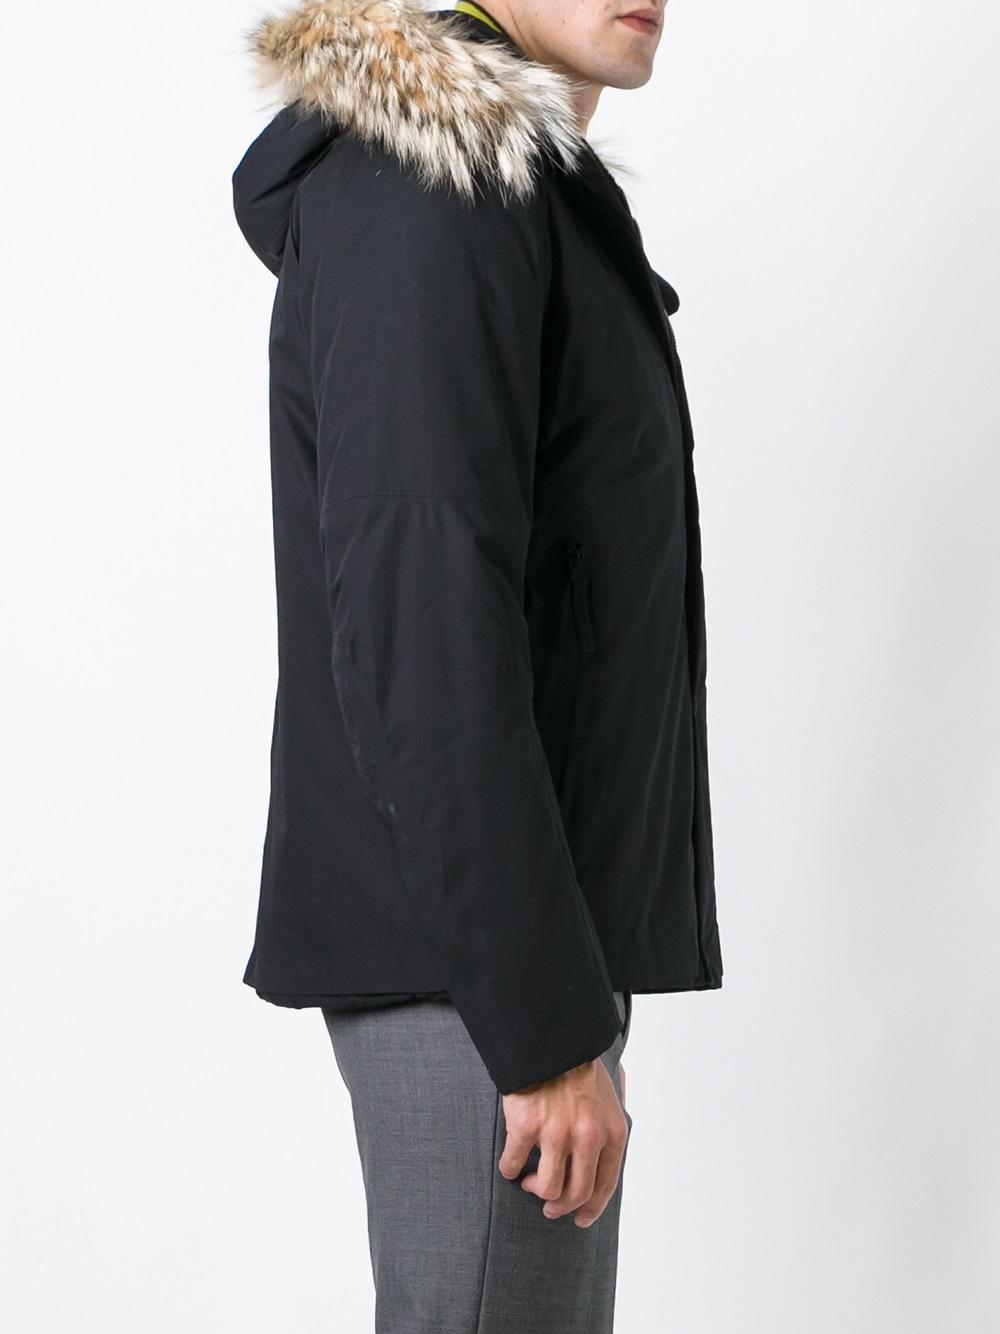 Stone Island Fur Lined Hooded Jacket in Black for Men